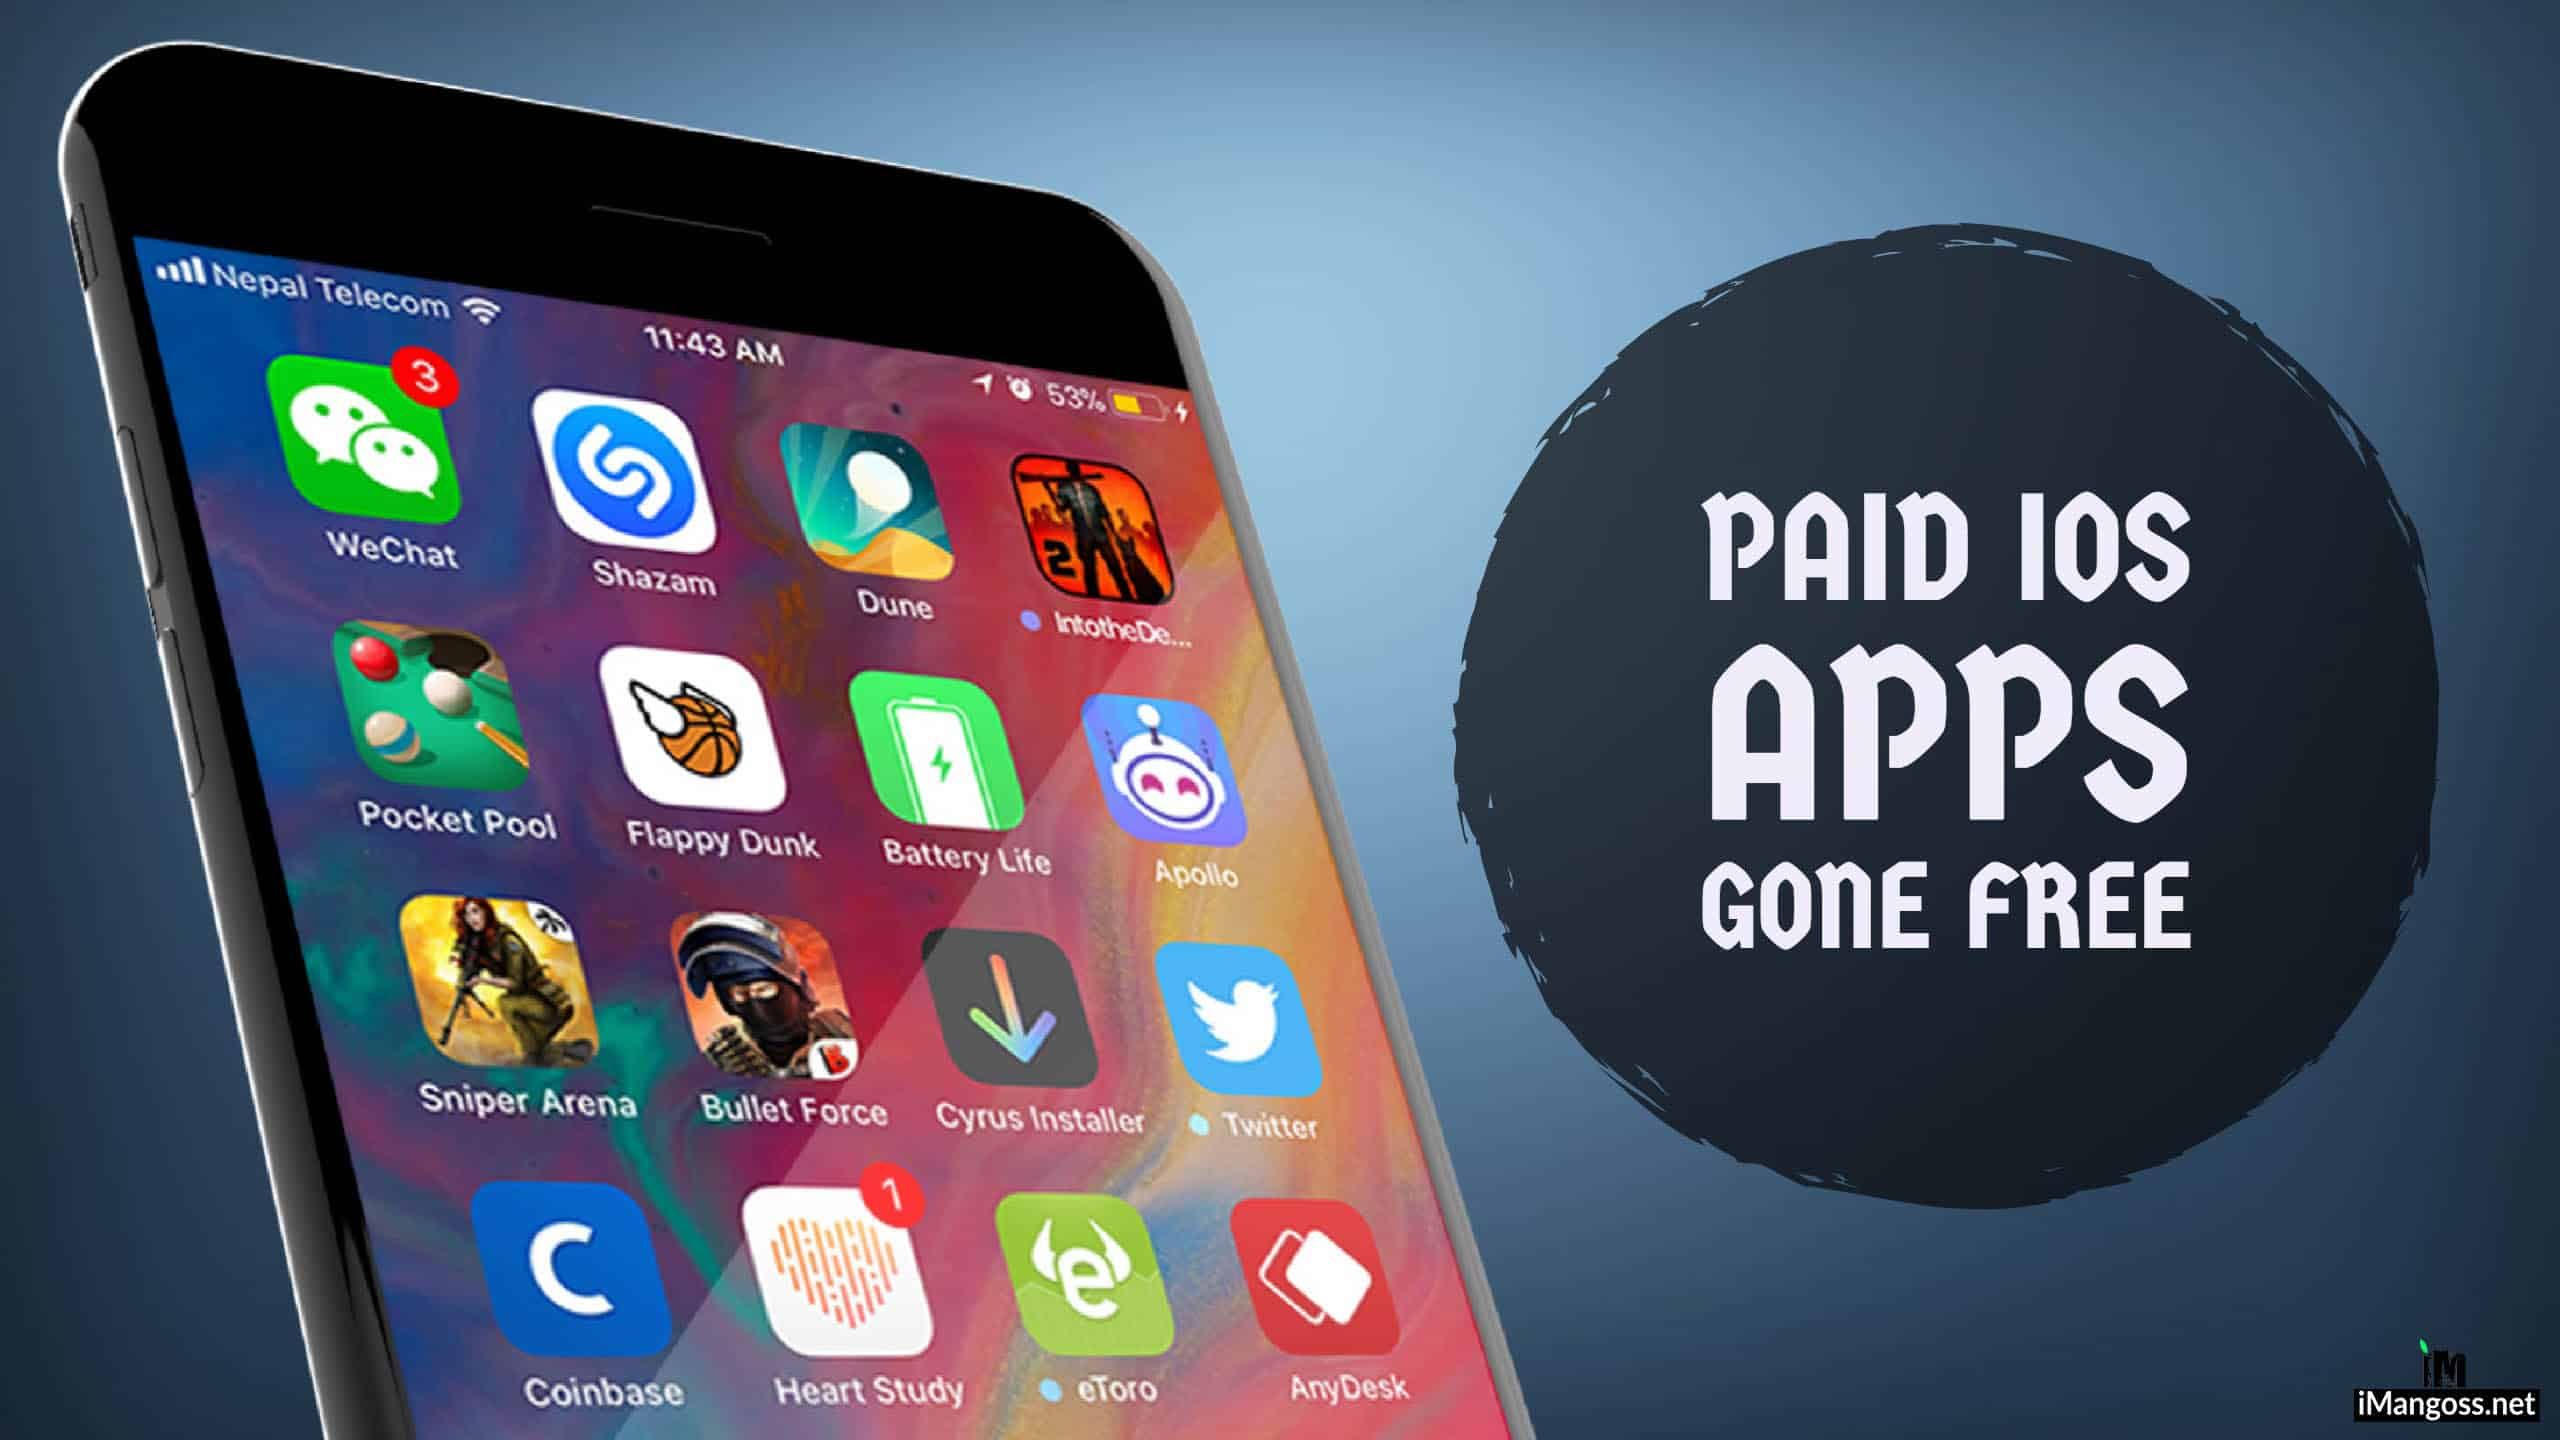 paid-ios-apps-gone-free